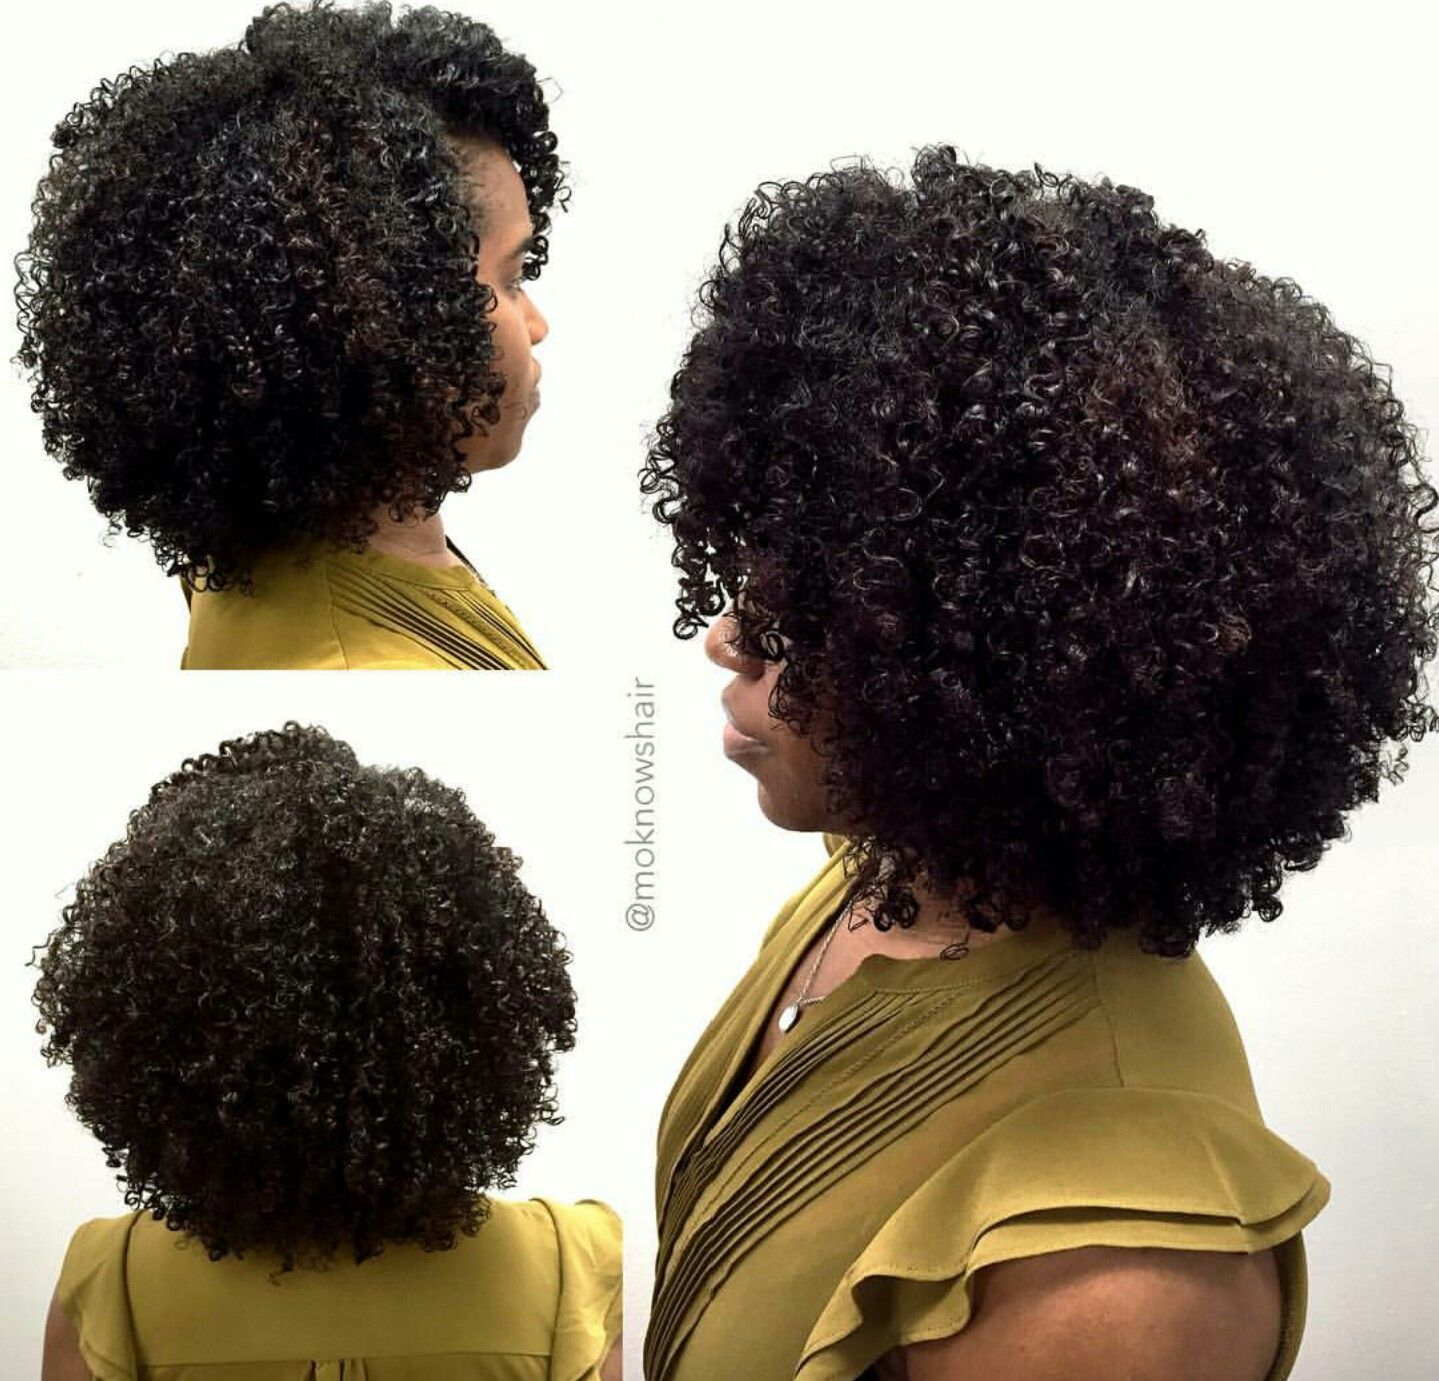 Haircut styles afro curly cut  hair  pinterest  natural hair goals and hair style